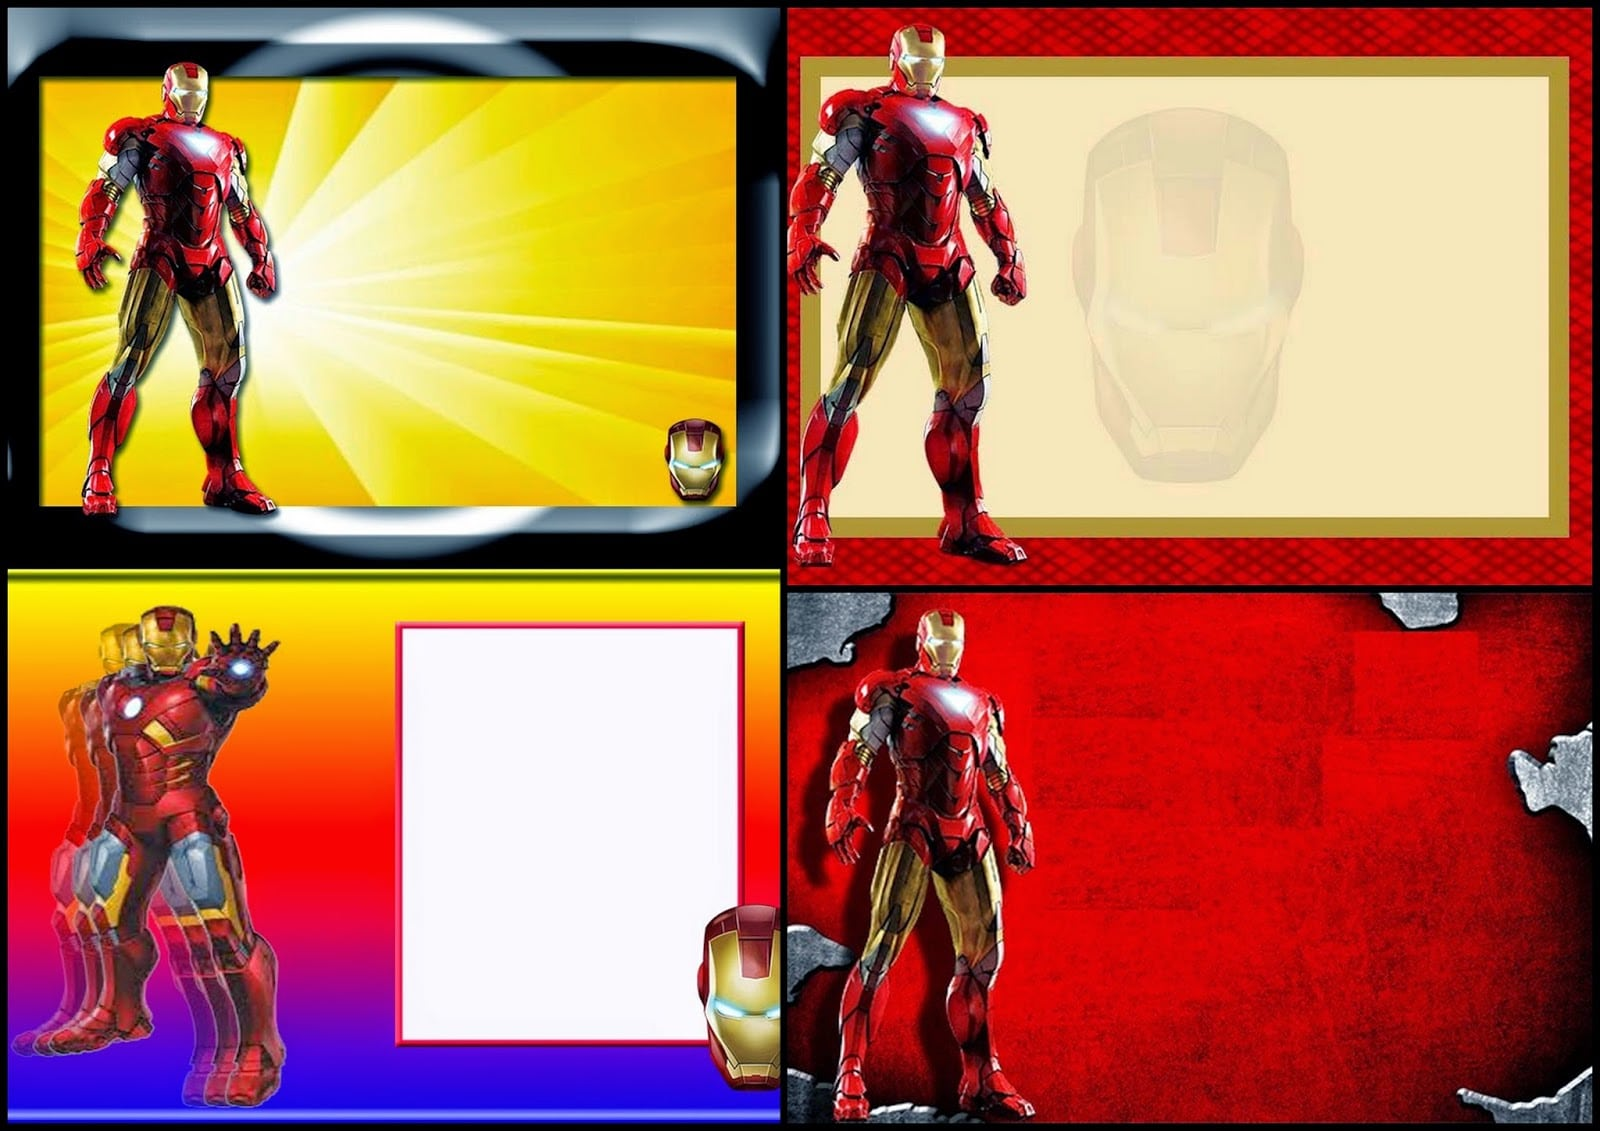 Iron Man Free Printable Invitations, Cards Or Photo Frames